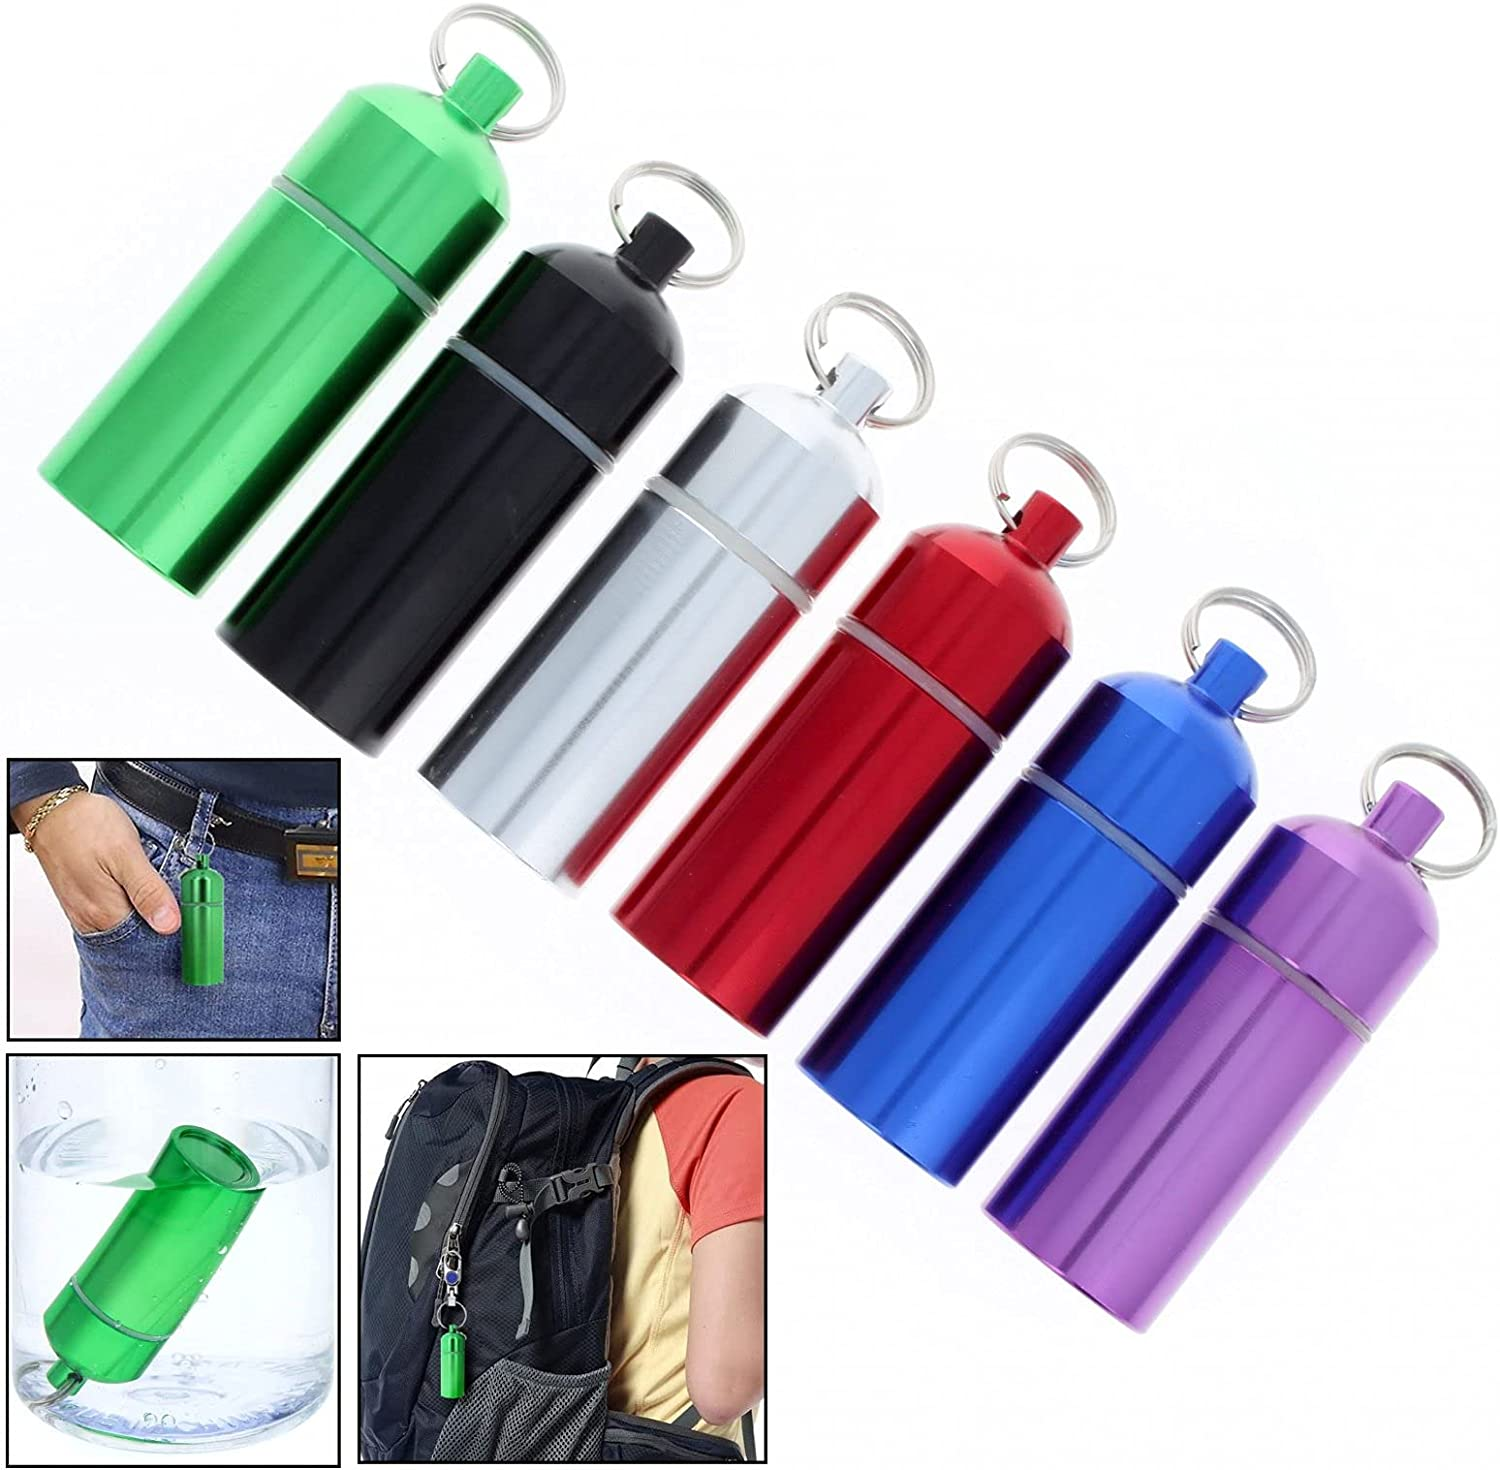 ToolTreaux Spring new work one after another Key Chain ID Pill Holder Interior Ri Plastic Coated Max 50% OFF O